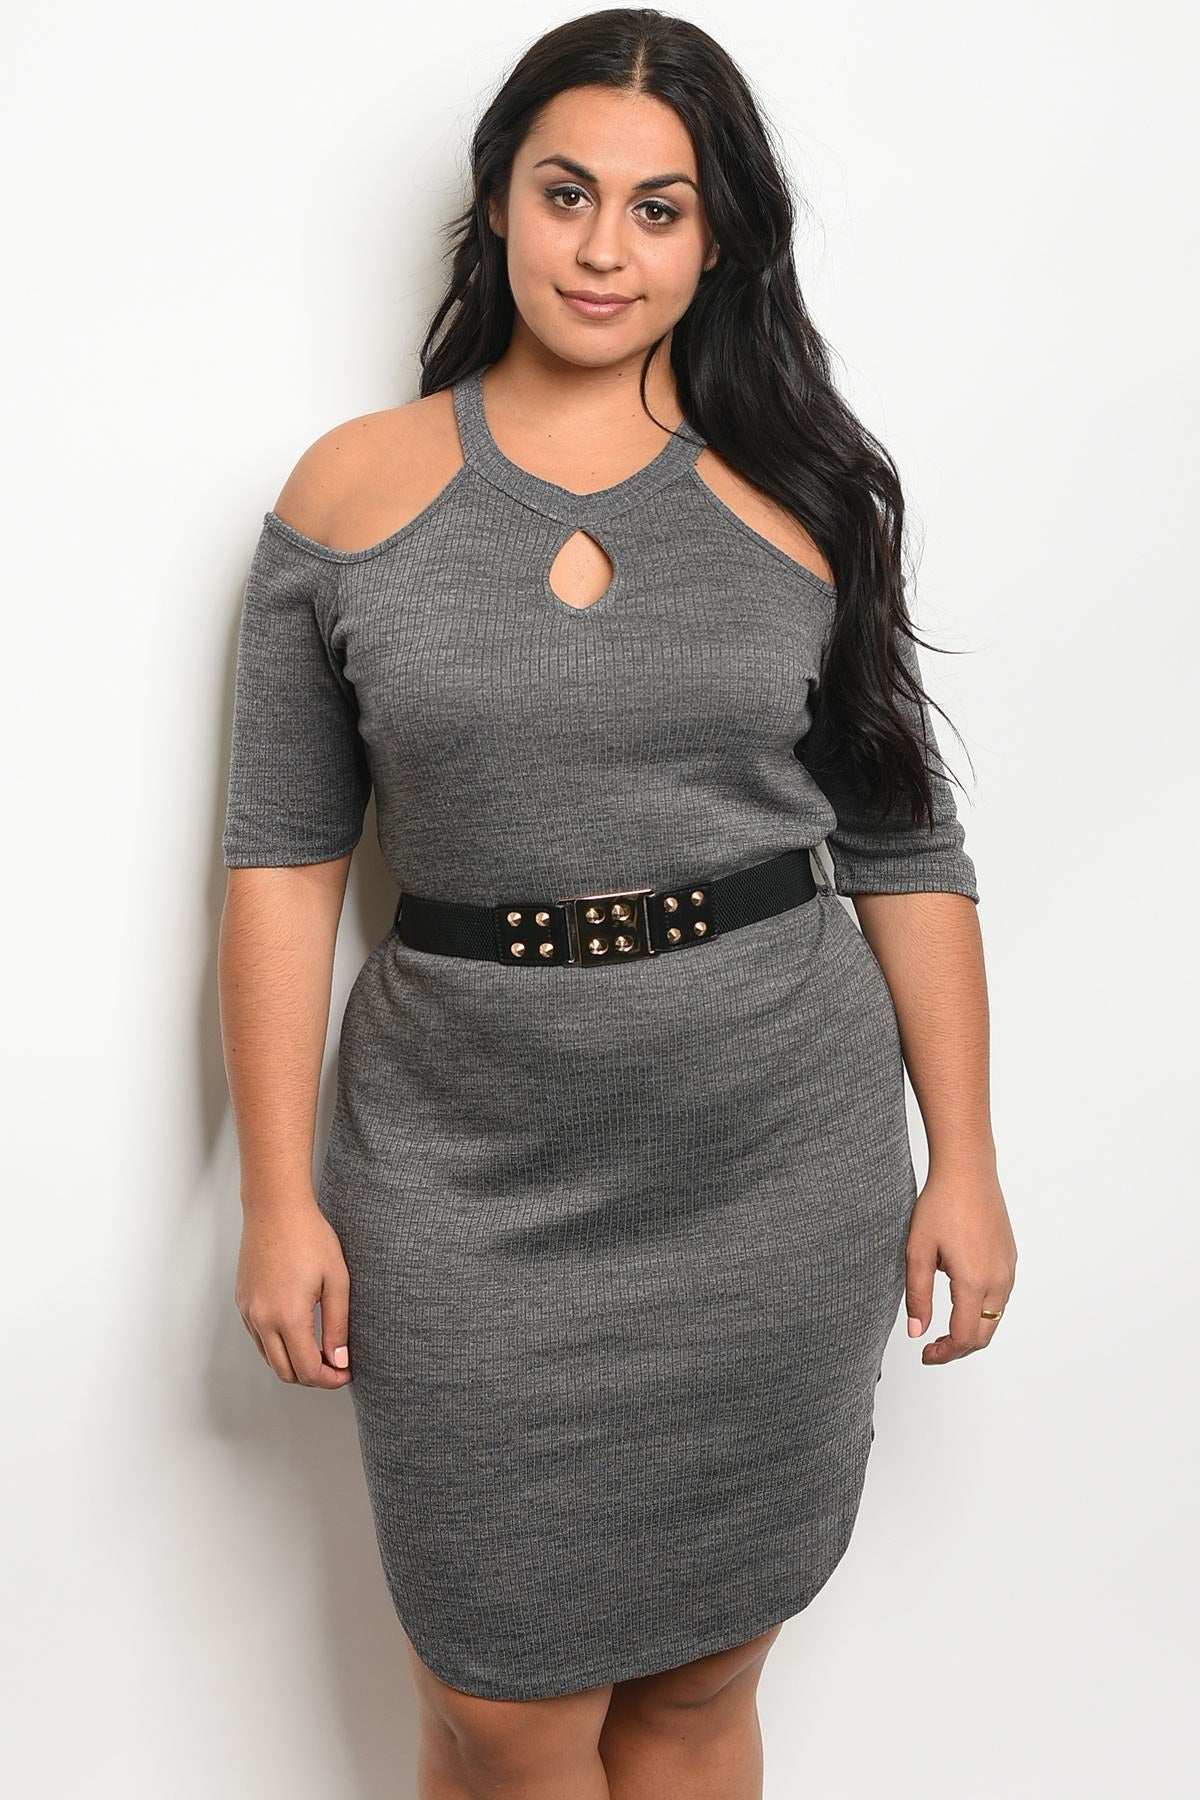 Ladies fashion plus size 3/4 sleeve ribbed bodycon dress with a crew neckline and cold shoulders-1XL-MY UPSCALE STORE